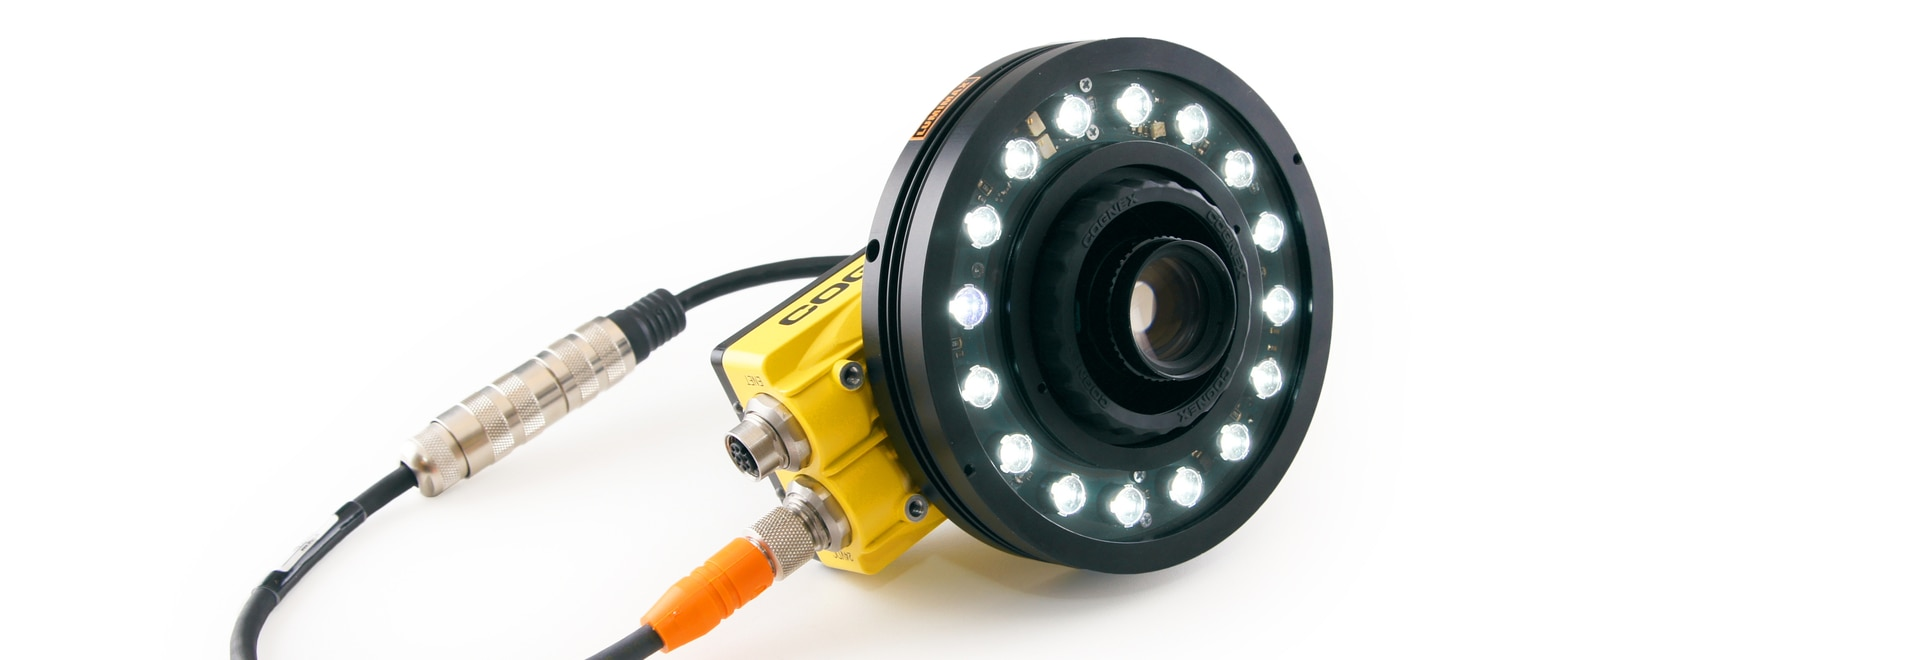 New LED High Power LR50 ring light from the brand LUMIMAX® (connected to the camera directly via T-Adapter cable)